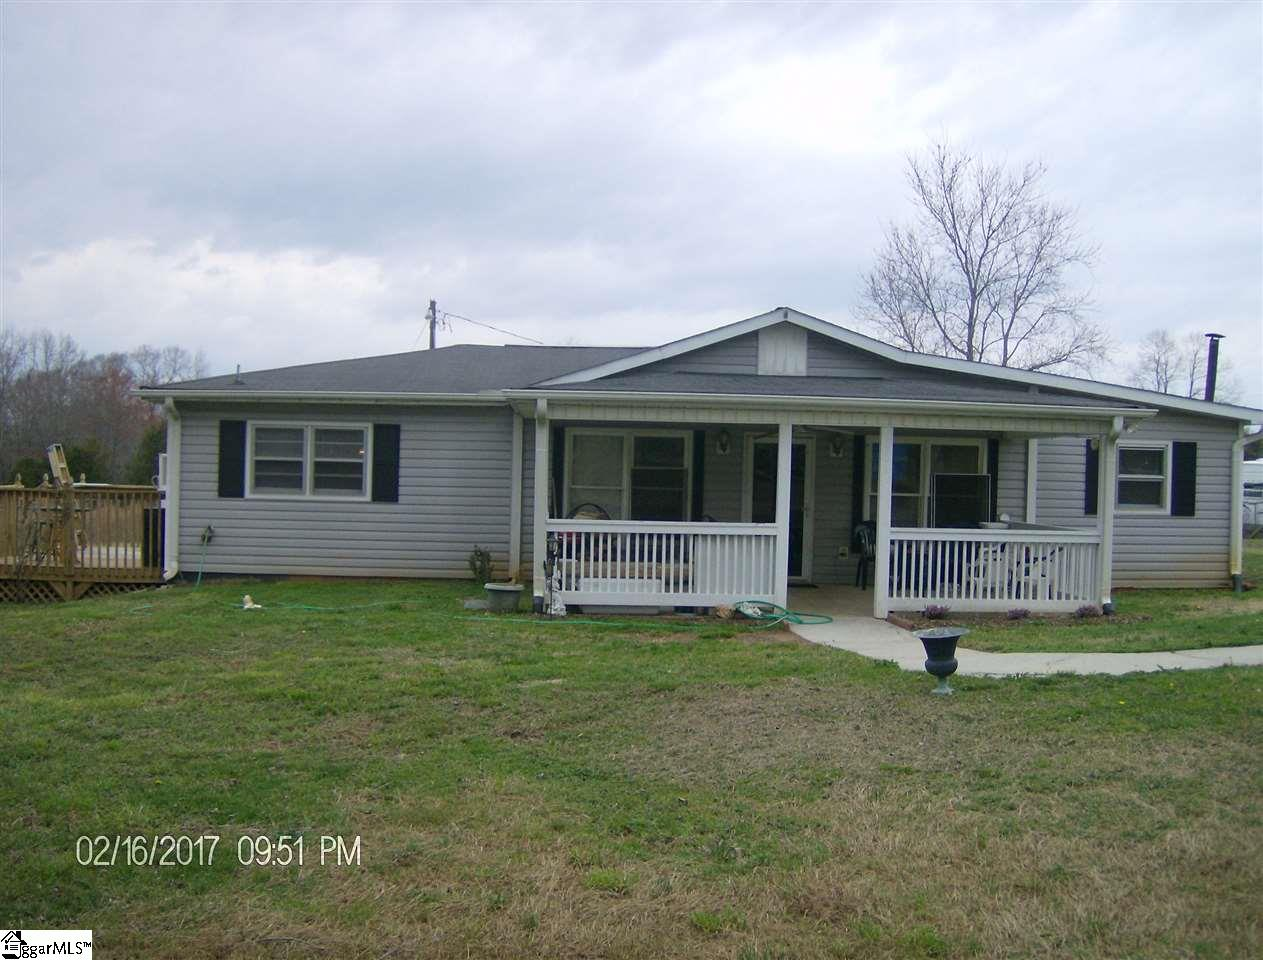 6901 Old Greenville Highway, Liberty, SC 29657